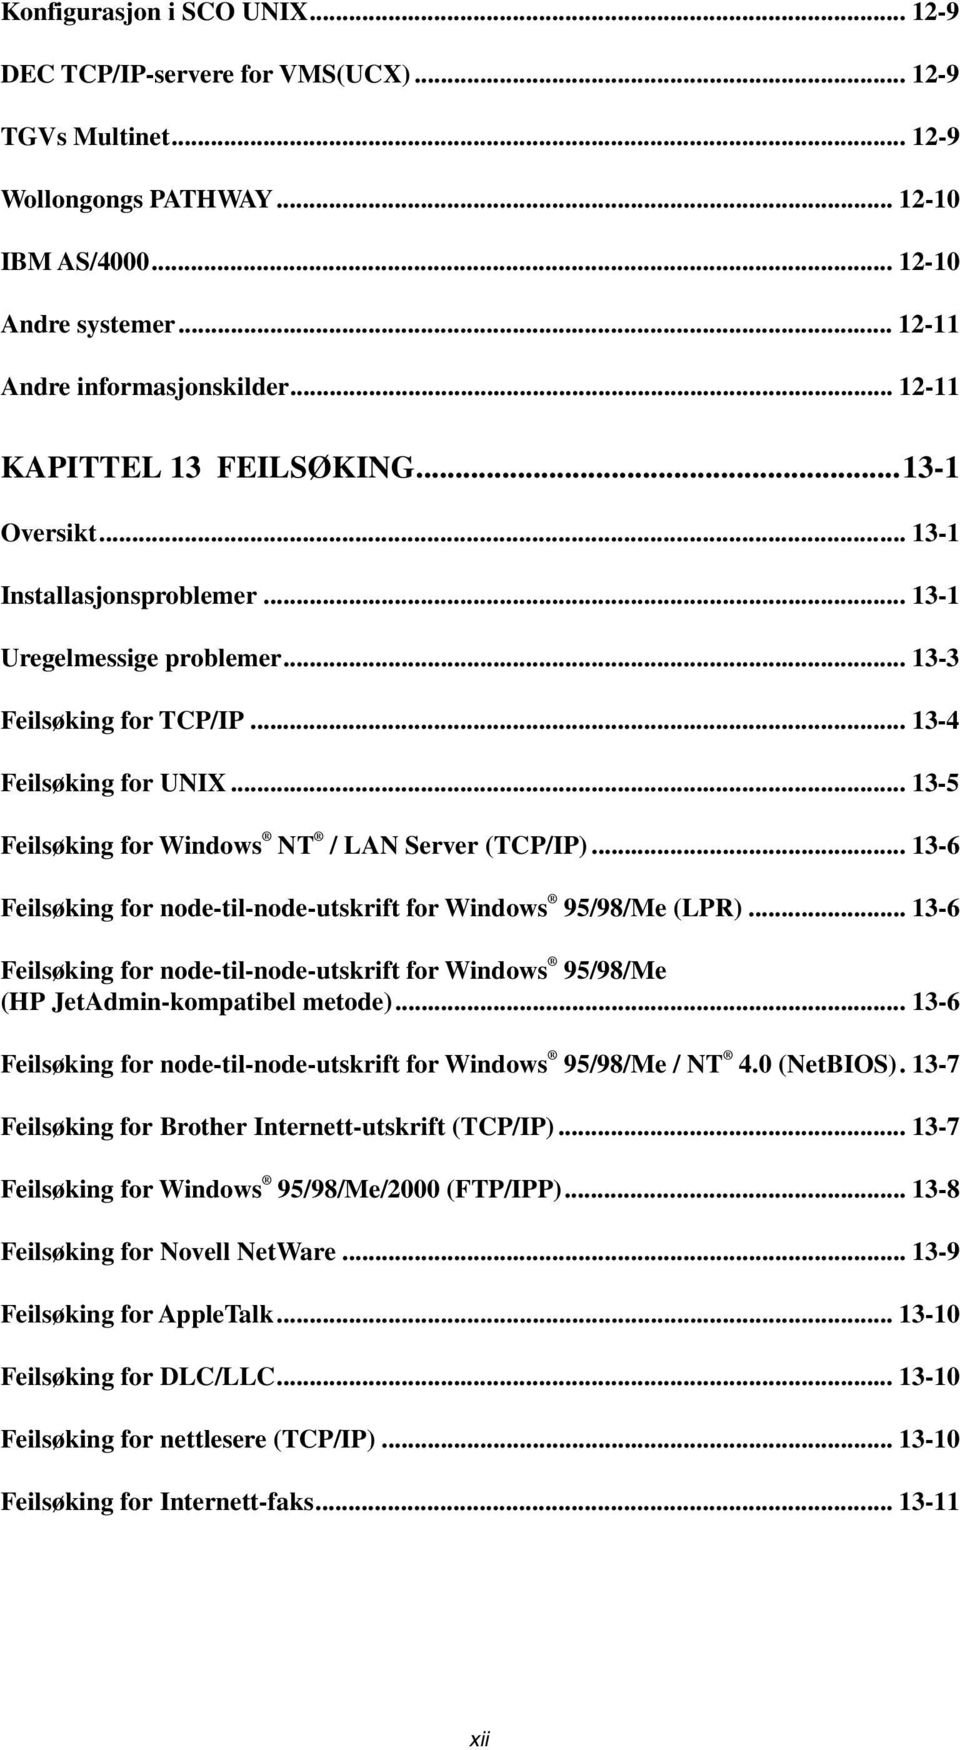 .. 13-5 Feilsøking for Windows NT / LAN Server (TCP/IP)... 13-6 Feilsøking for node-til-node-utskrift for Windows 95/98/Me (LPR).